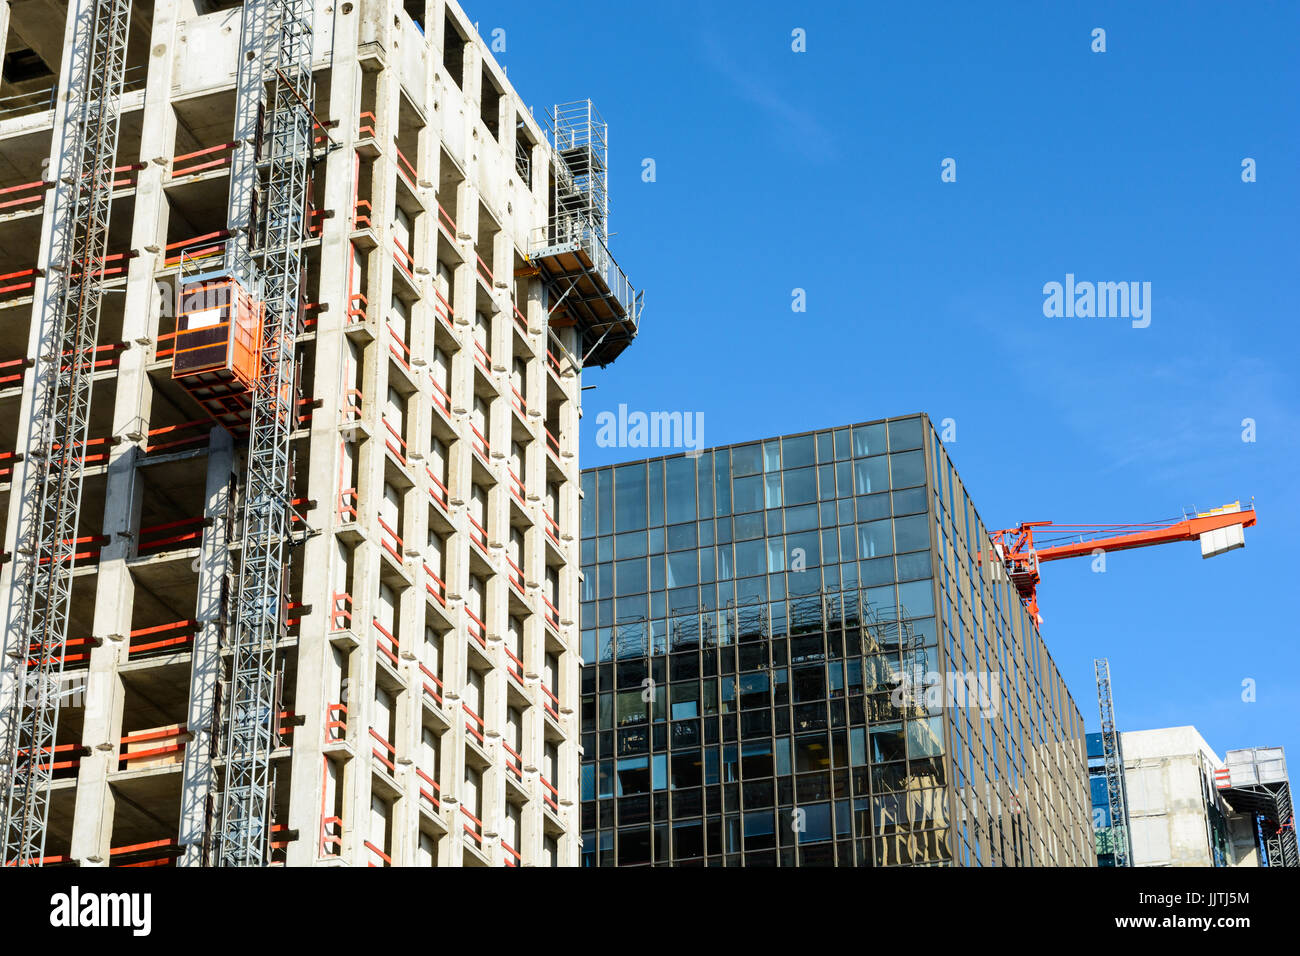 Low angle view of a glass building between two concrete buildings under construction with a red tower crane against Stock Photo